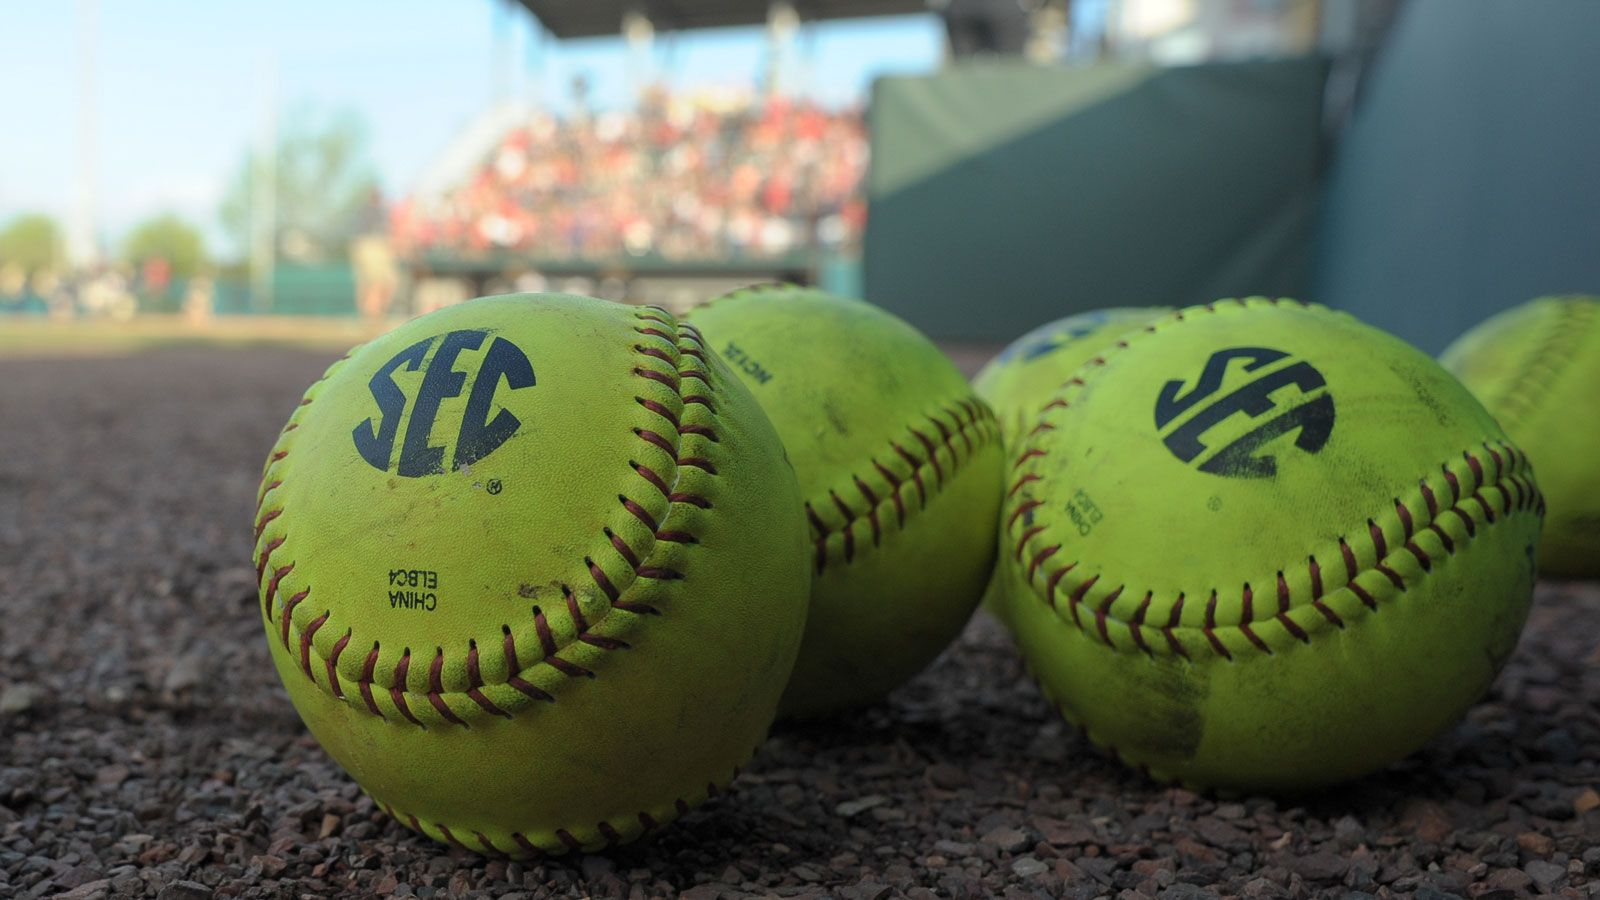 Five from SEC named to U.S. Olympic Softball Team